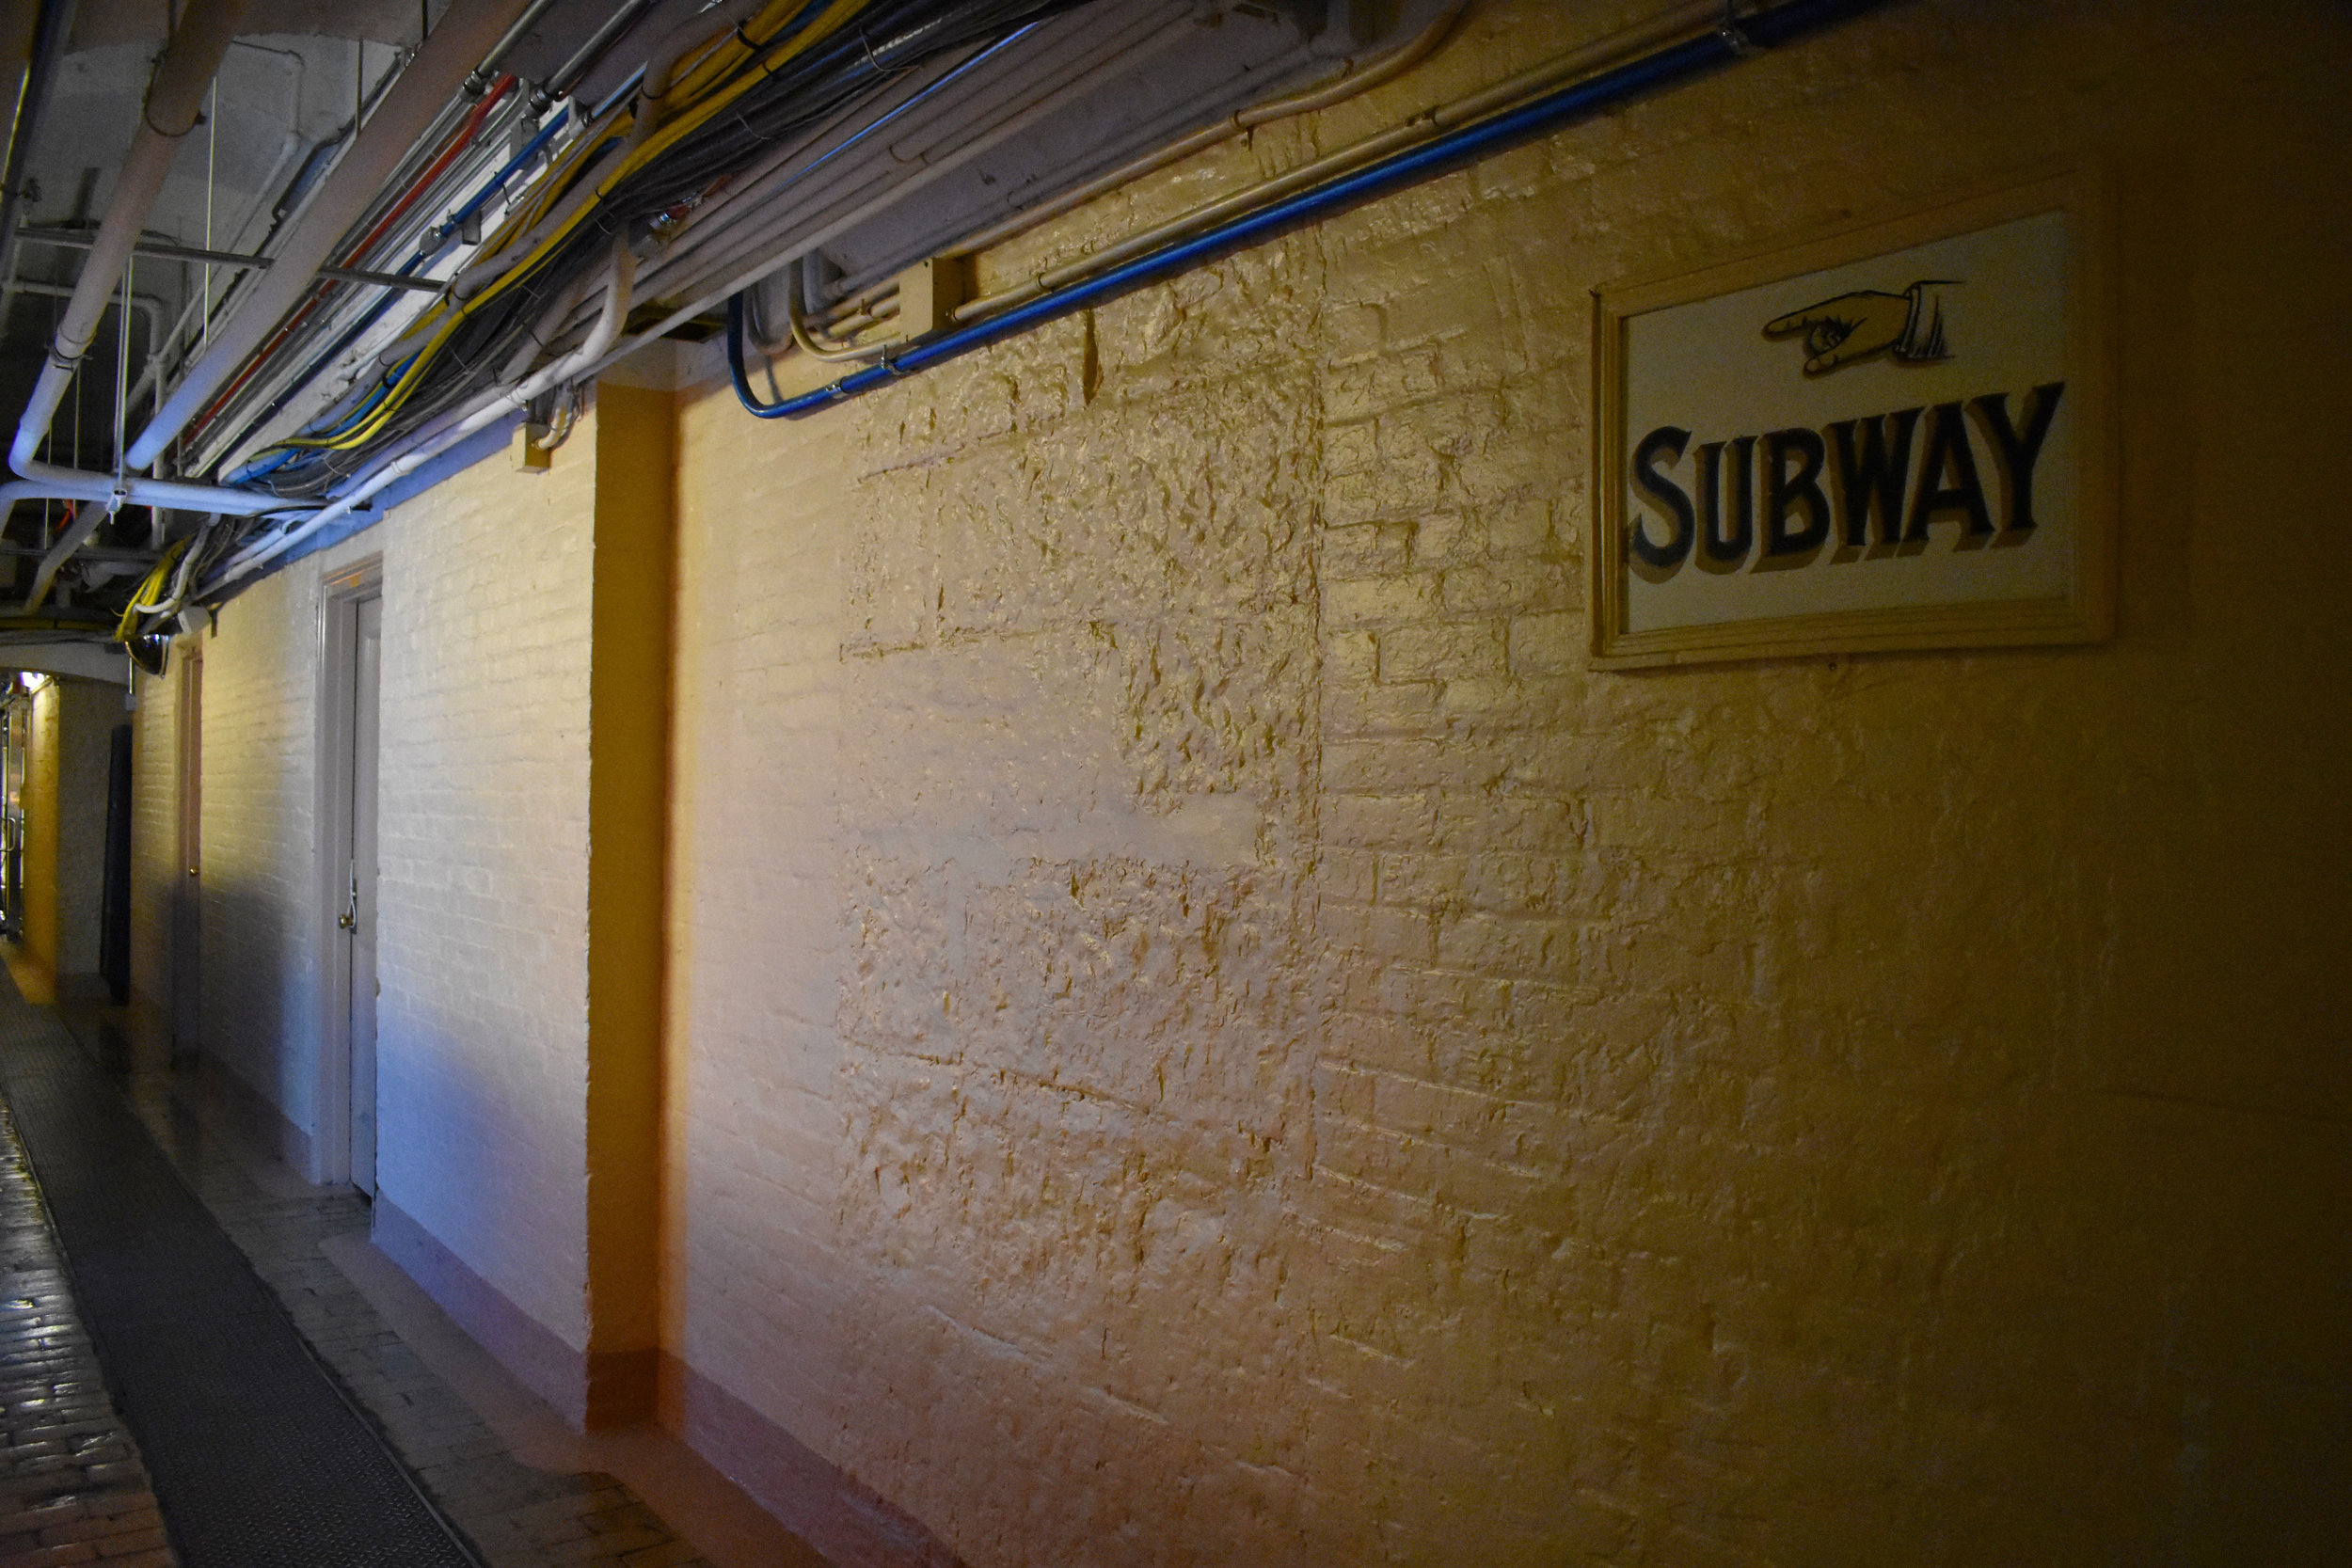 A sign points toward the Senate subway system in the basement of the U.S. Capitol in Washington, Thursday, Jan. 25, 2018. (Lindsey Leake/American University)